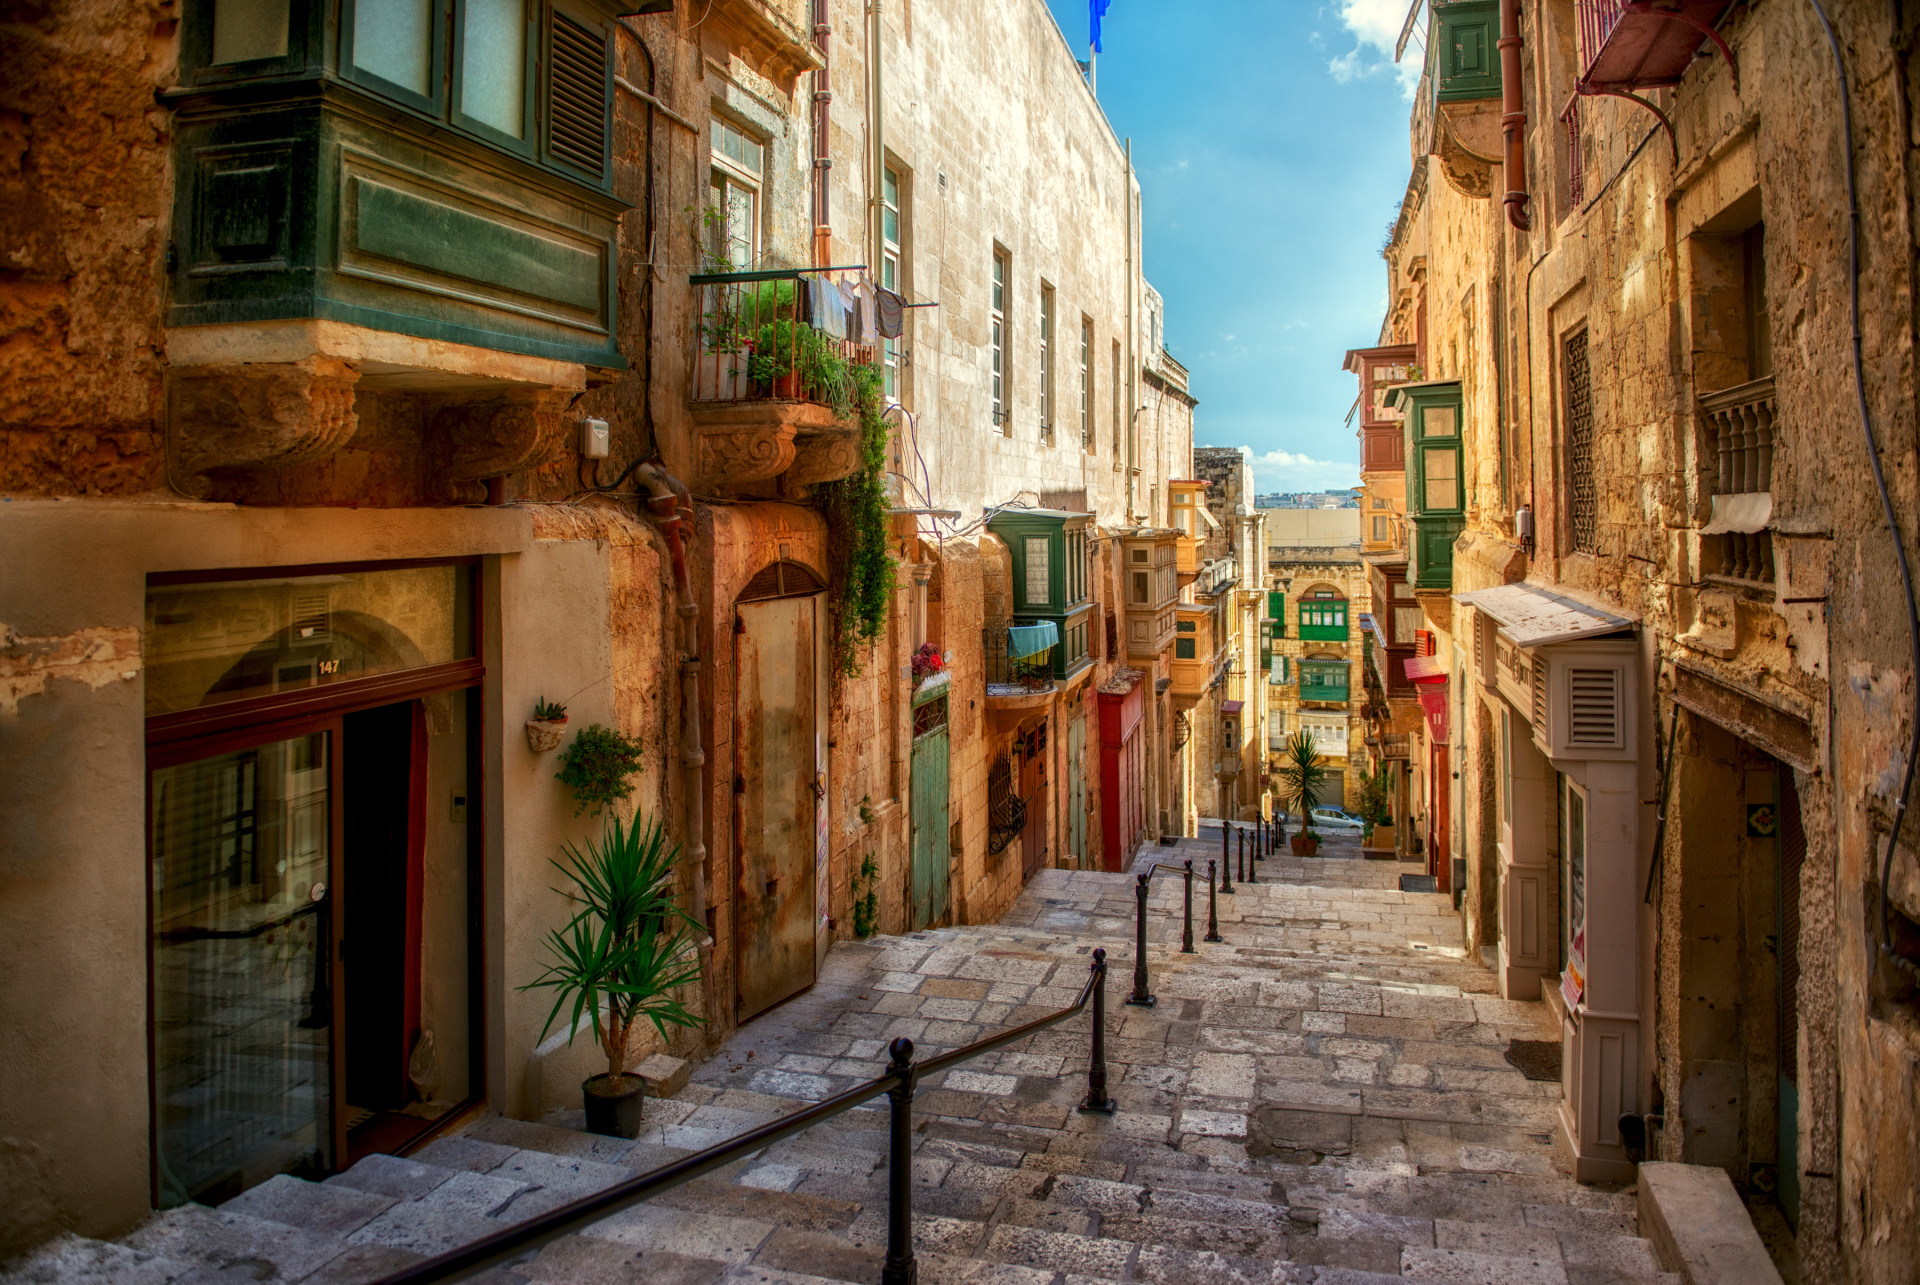 The Beauty and Magnificence of Valletta